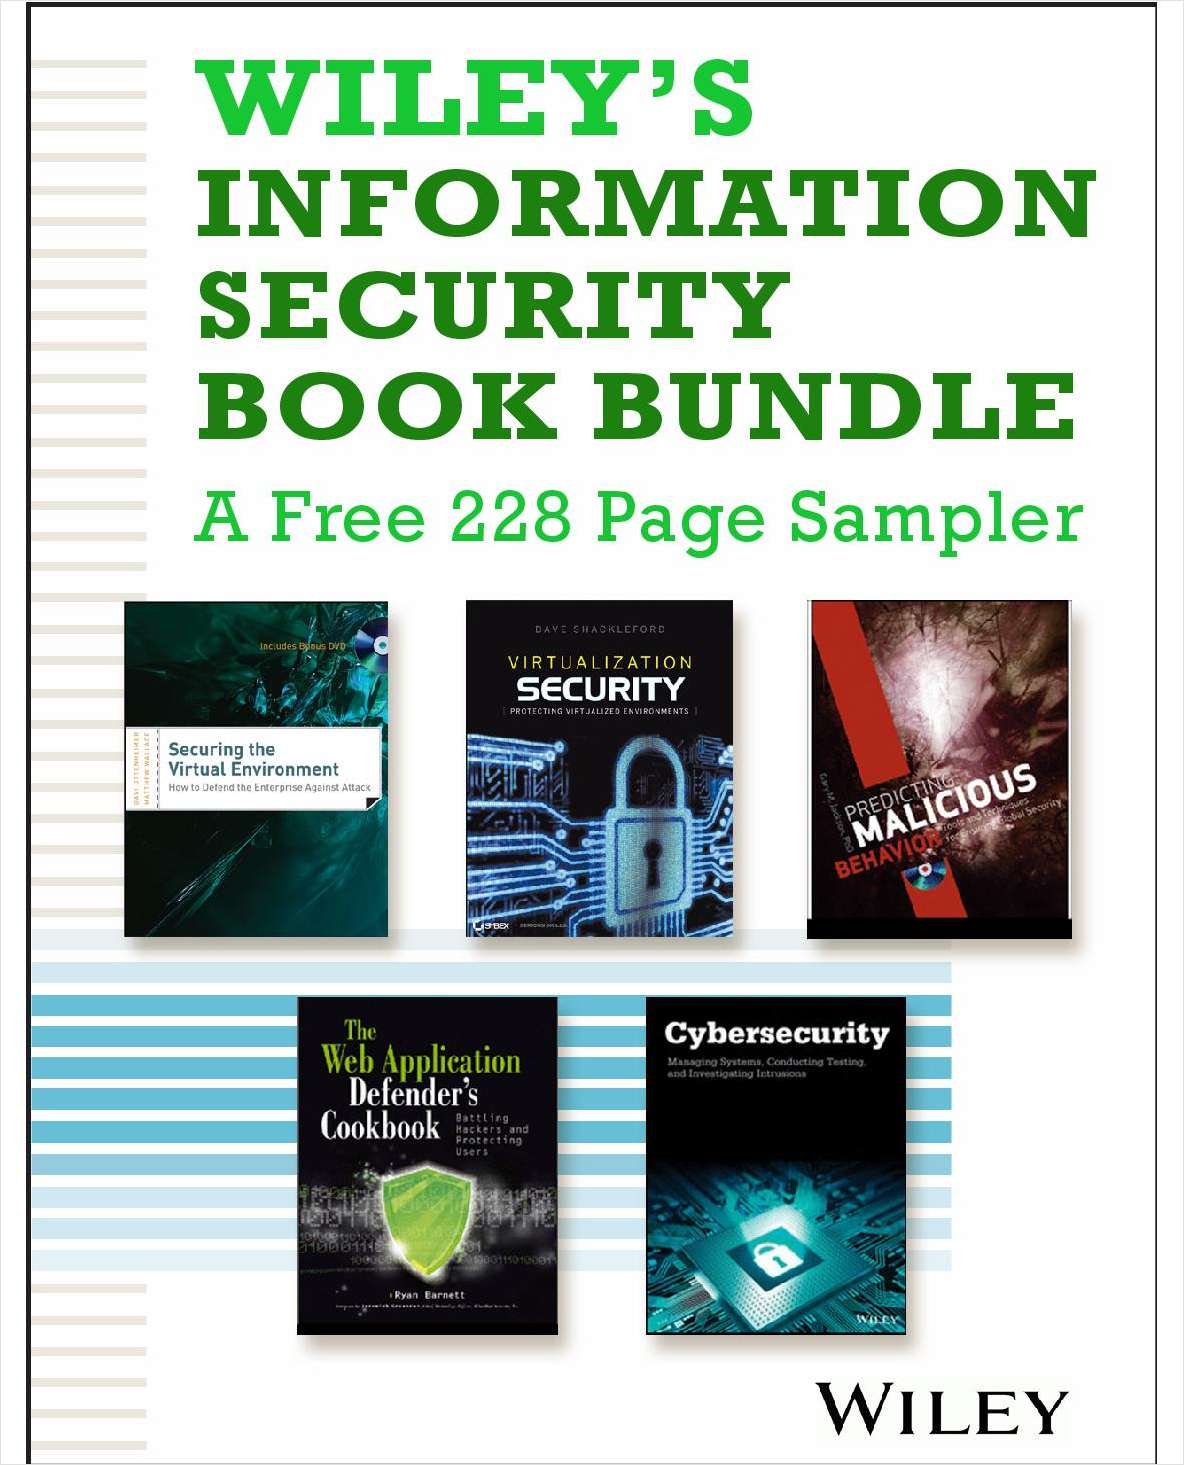 Wiley's Information Security Book Bundle -- A Free 228 Page Sampler